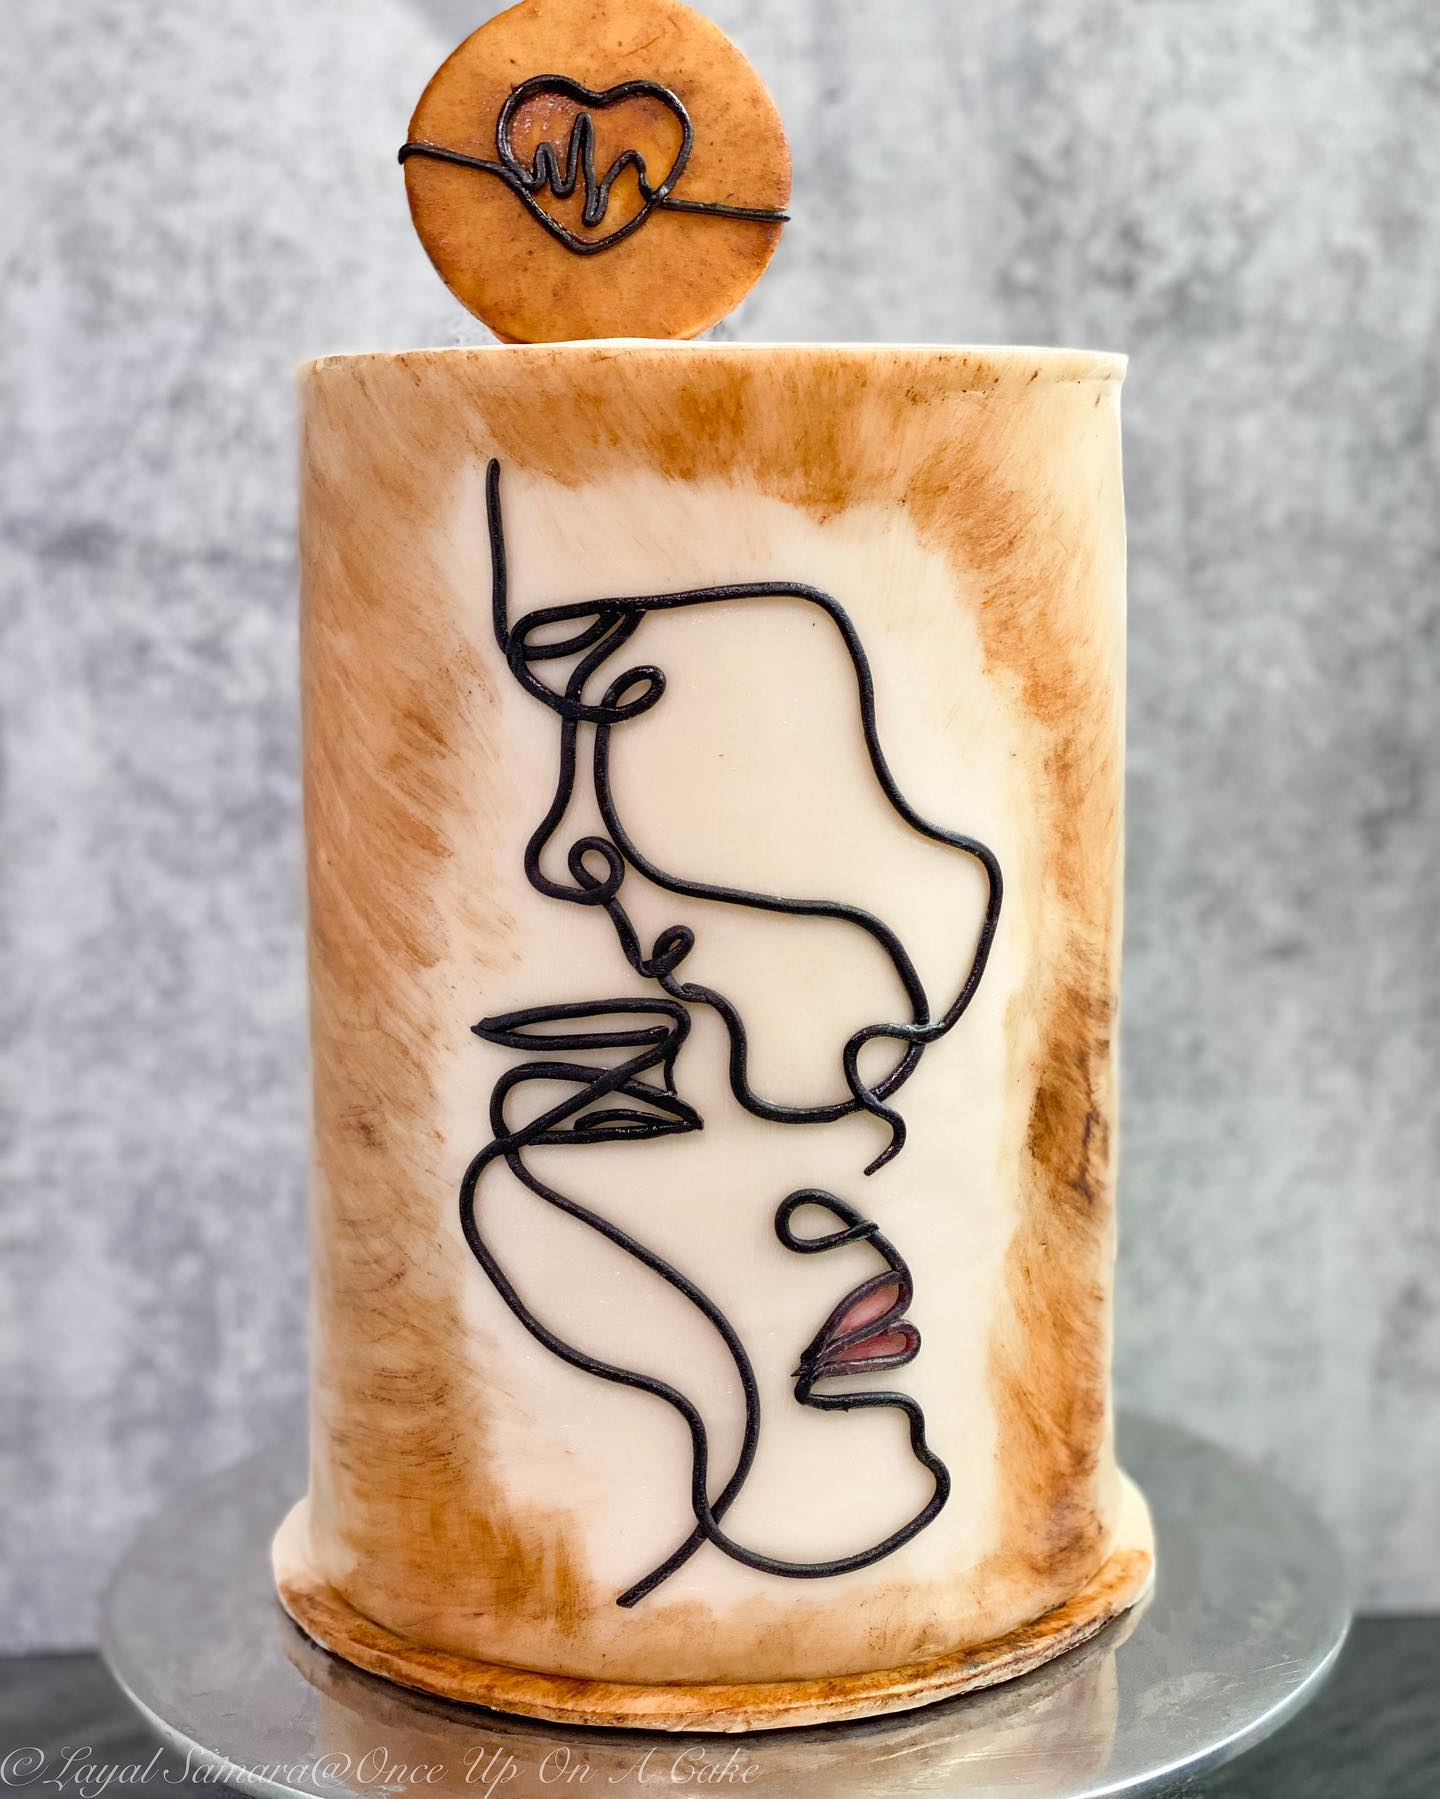 One line drawing cake